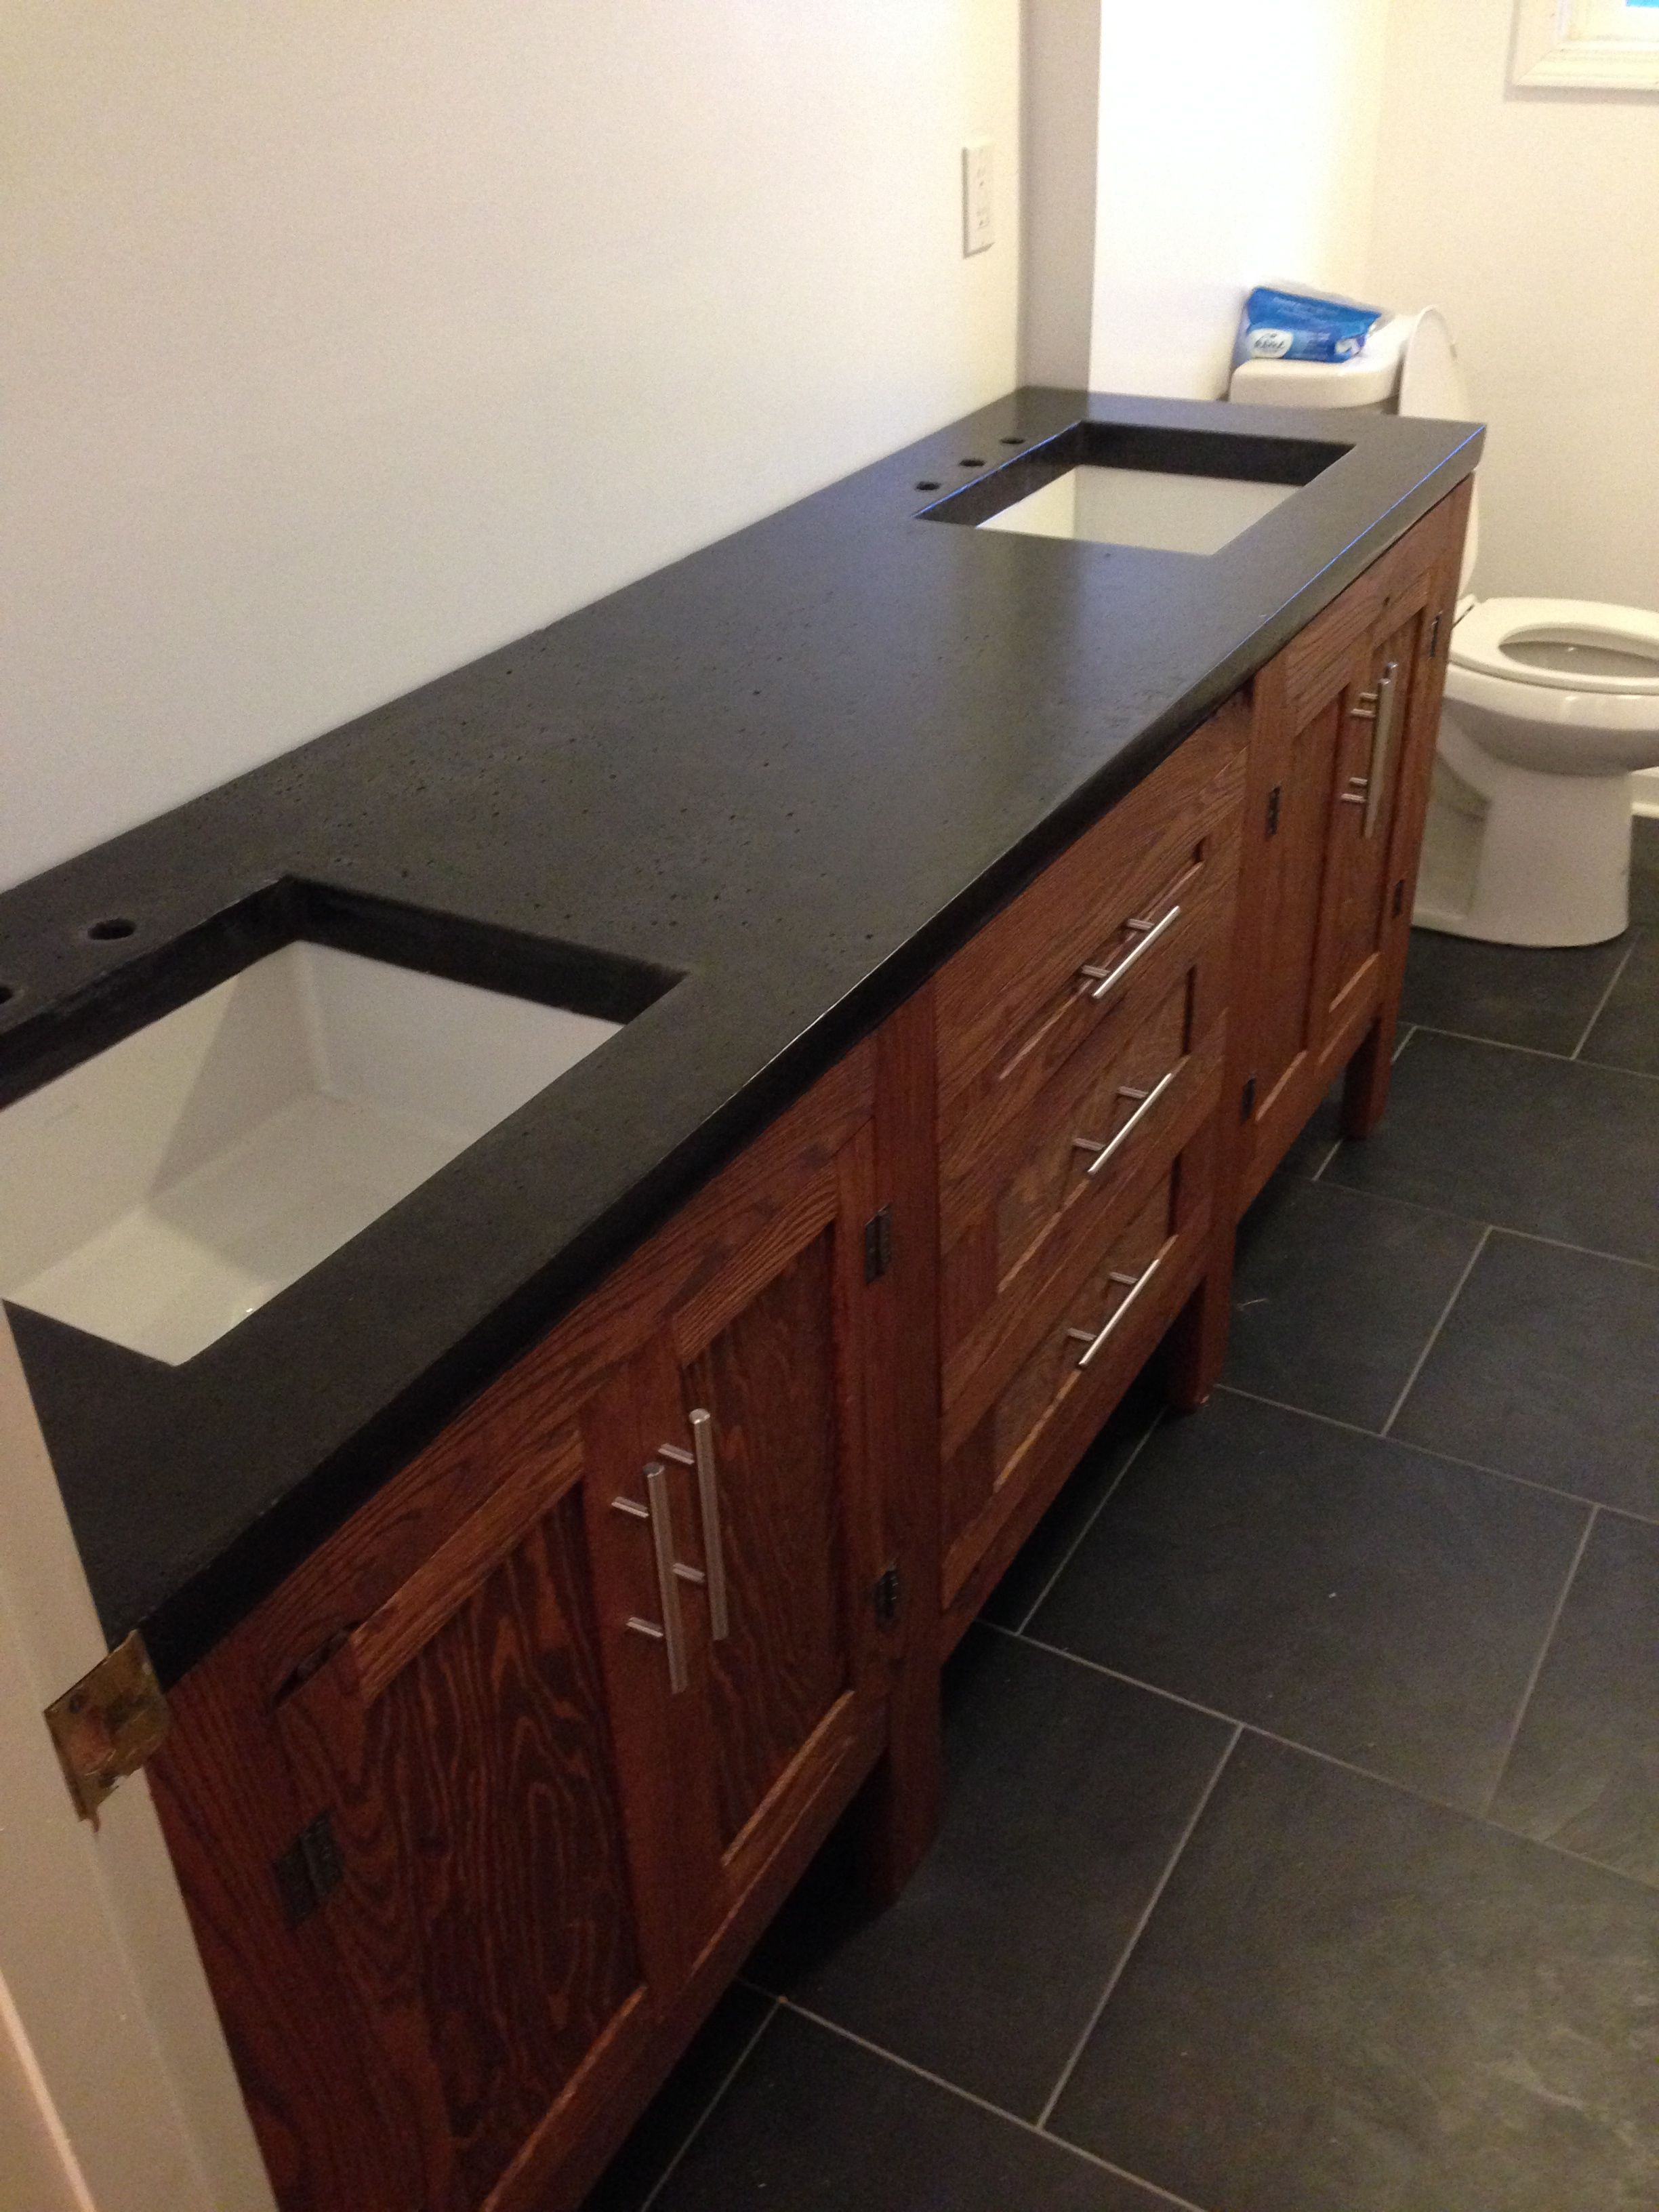 Laminate Bathroom Countertops: Red Oak Bathroom Vanity With Concrete Counter Tops And